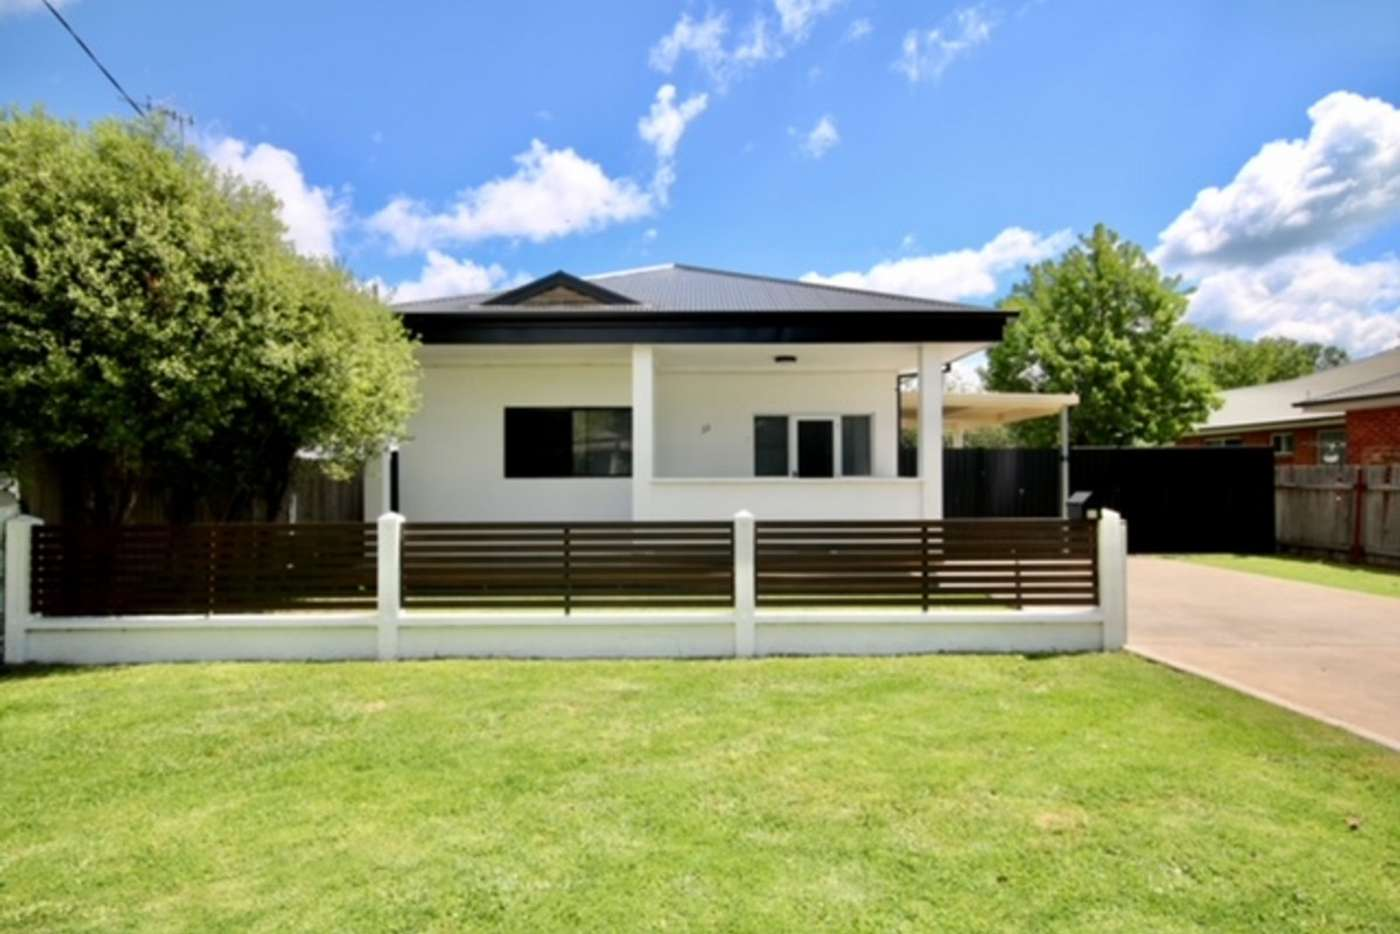 Main view of Homely house listing, 33 Stewart Street, Bathurst NSW 2795